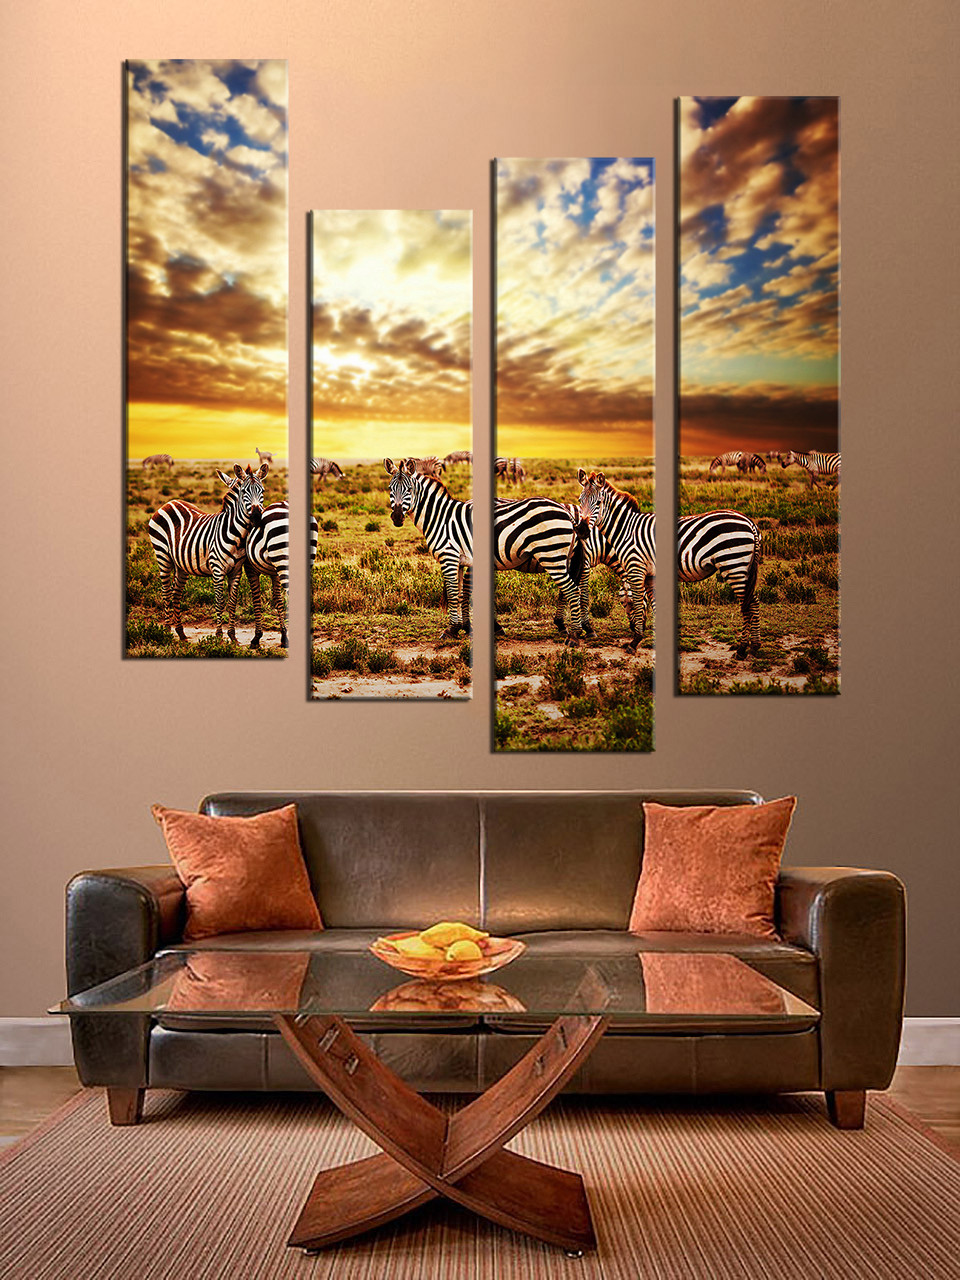 Living room decor 4 piece wall art zebra pictures animal art wildlife